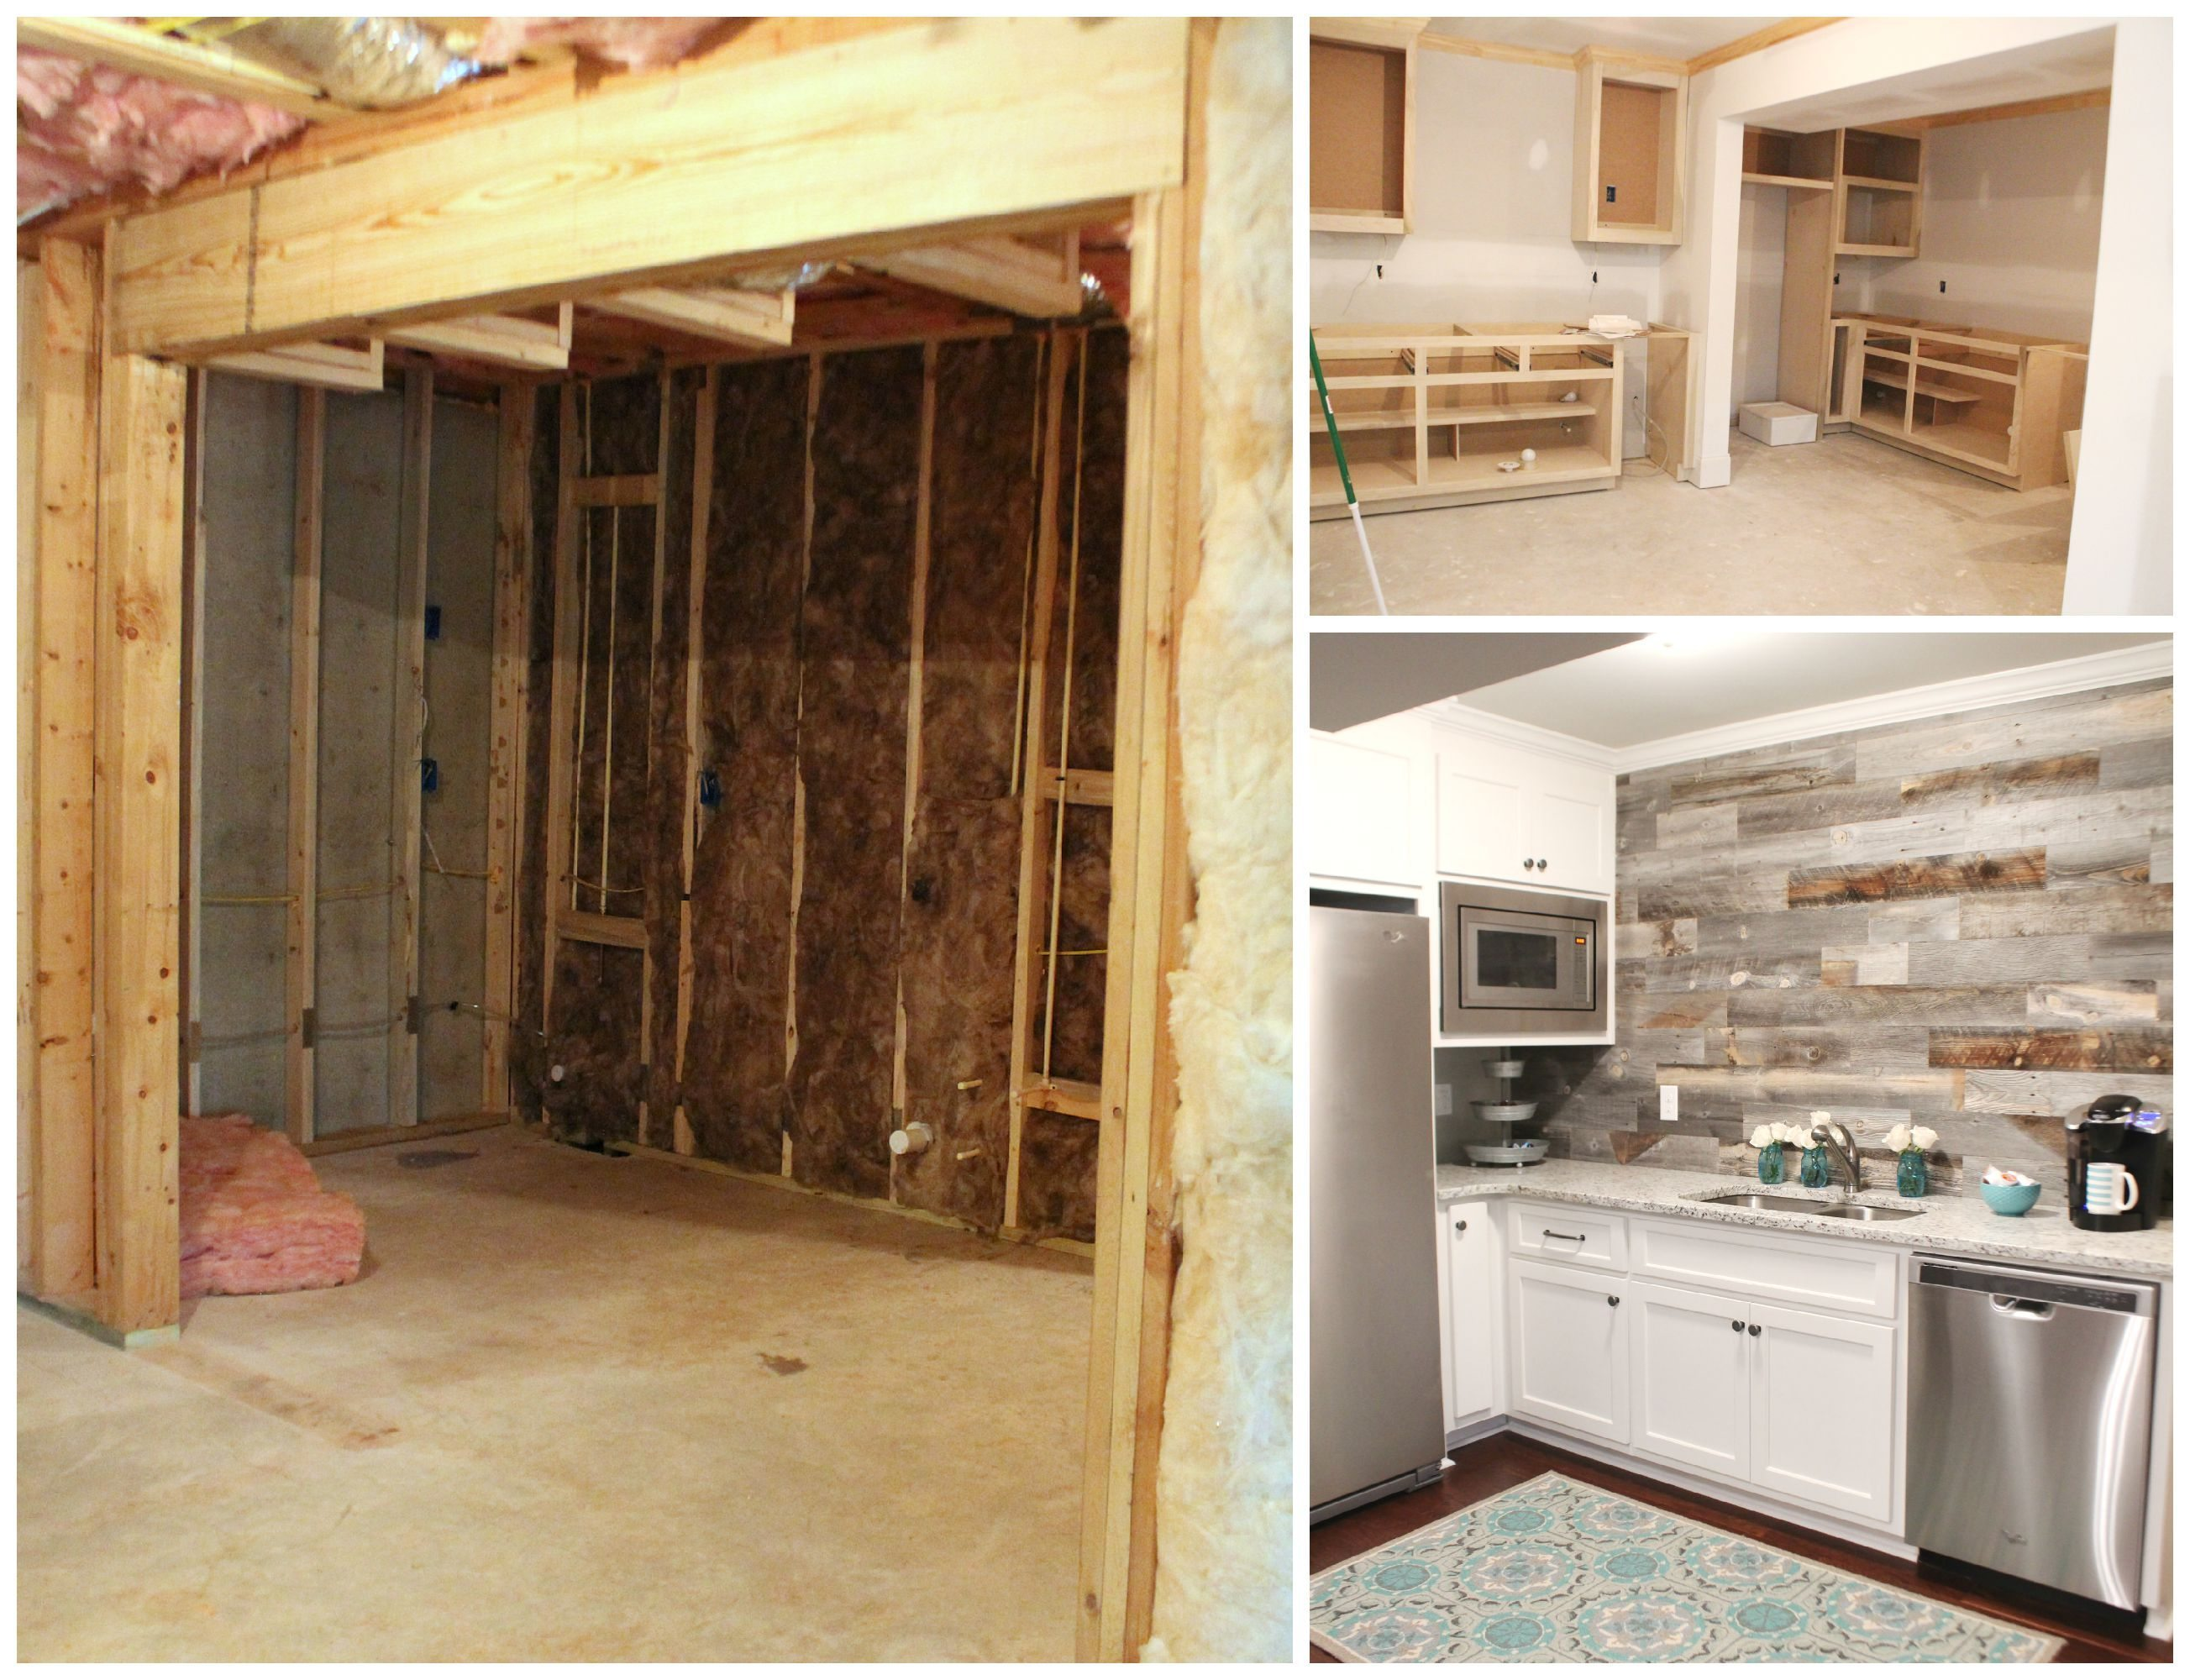 Basement kitchen area before and after refreshrestyle.com